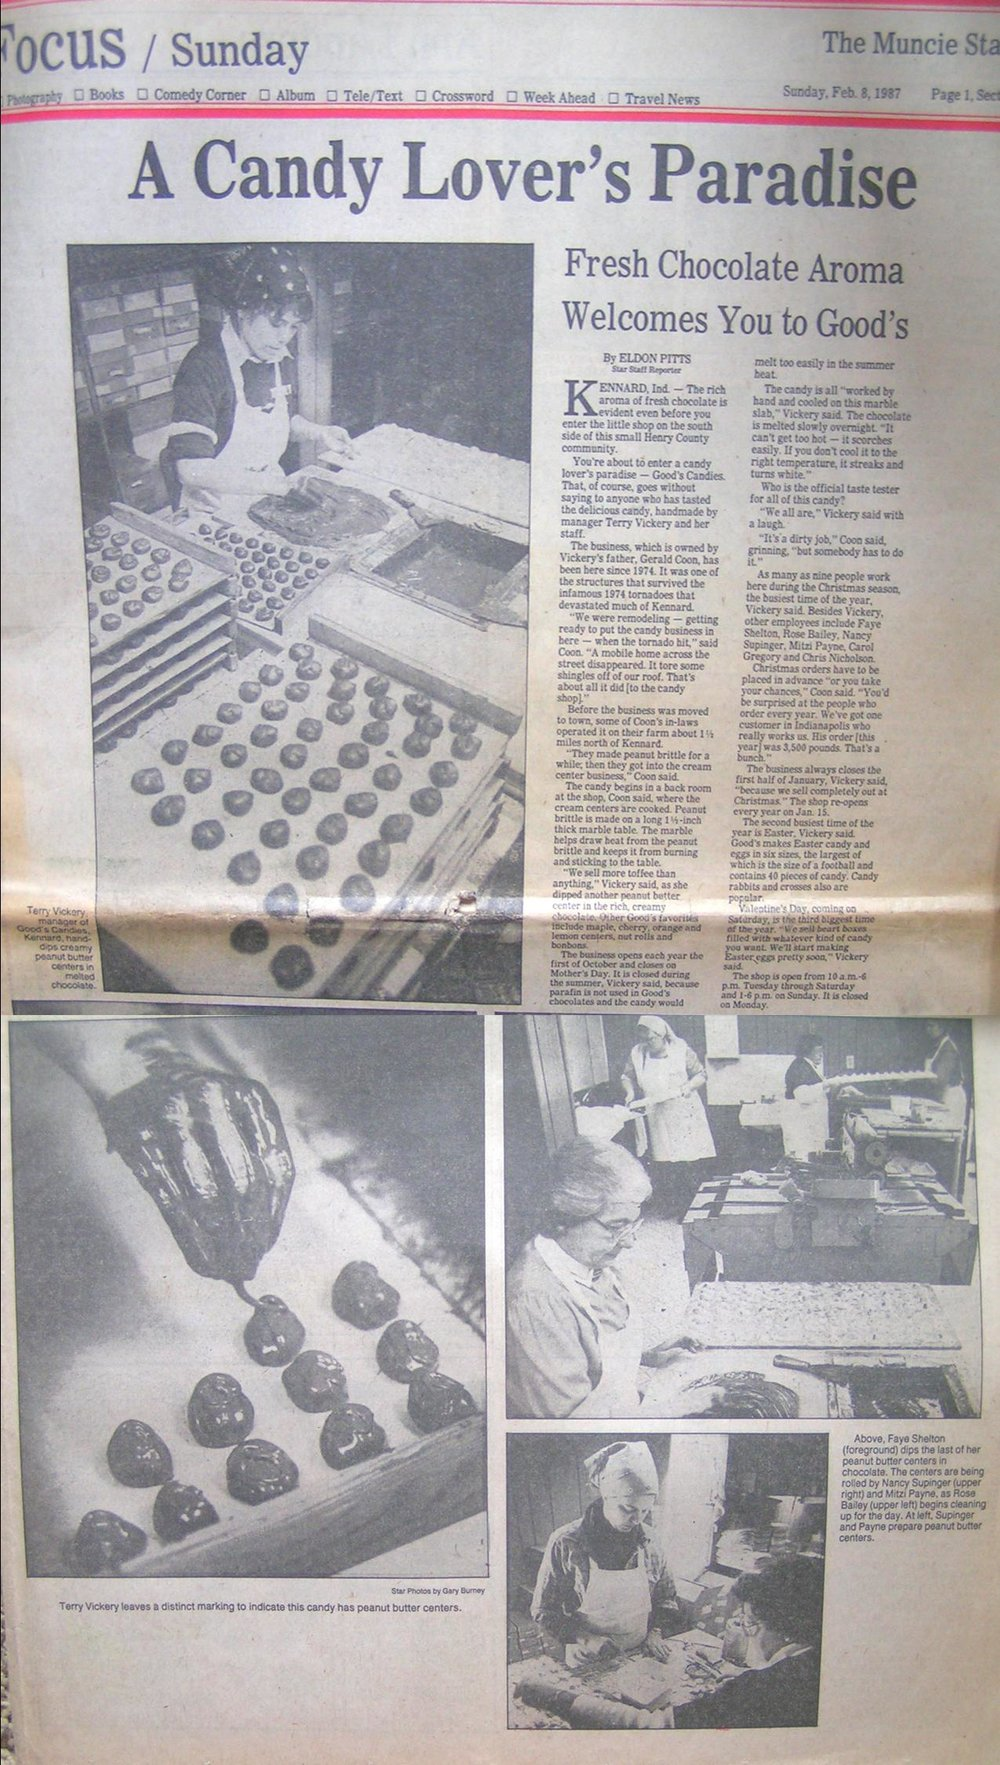 Goods_MuncieStar_Feb1987_1.jpg